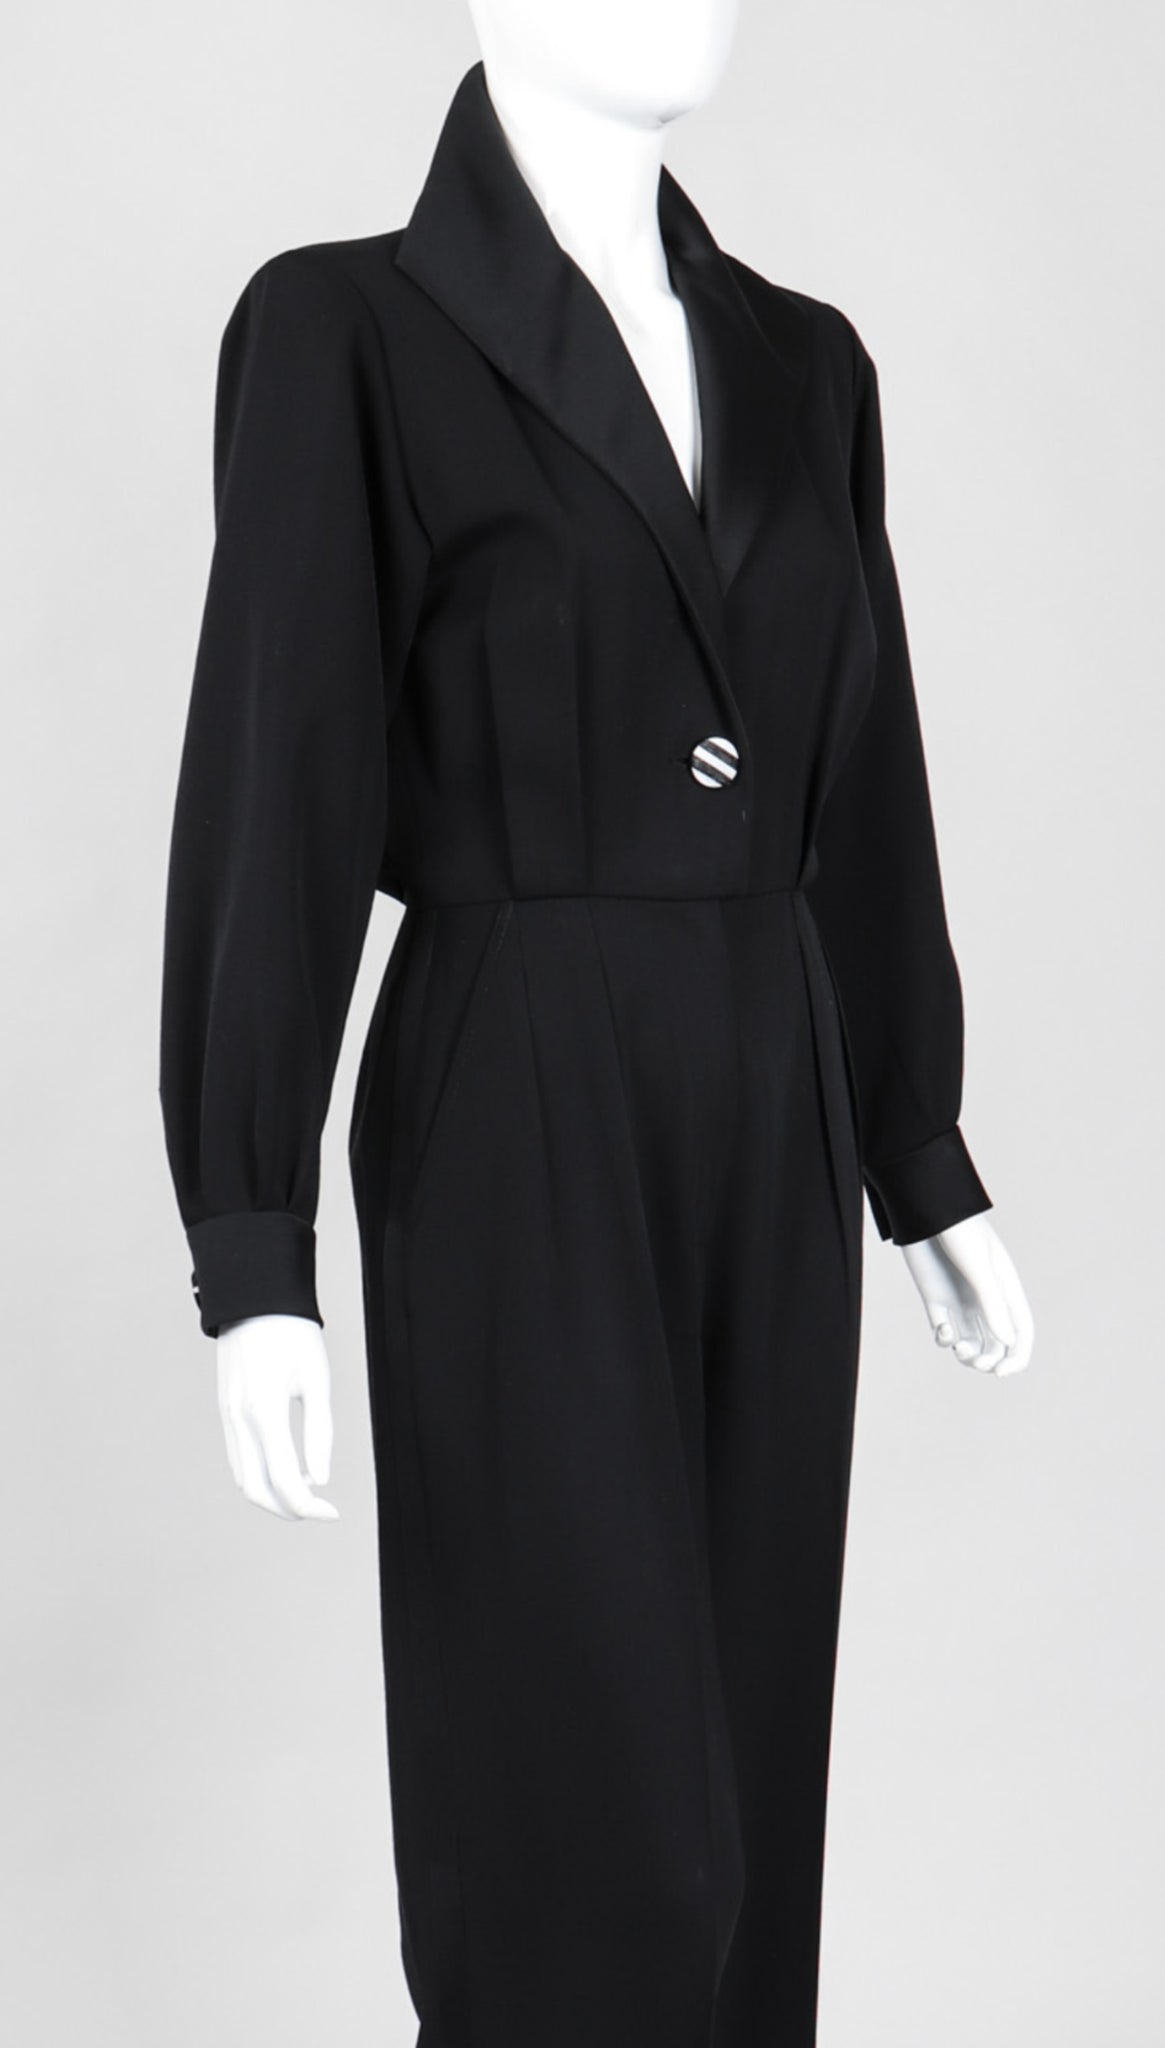 Dress Code Recess Los Angeles Yves Saint Laurent YSL Equality Androgyny Jumpsuit Tuxedo Pantsuit